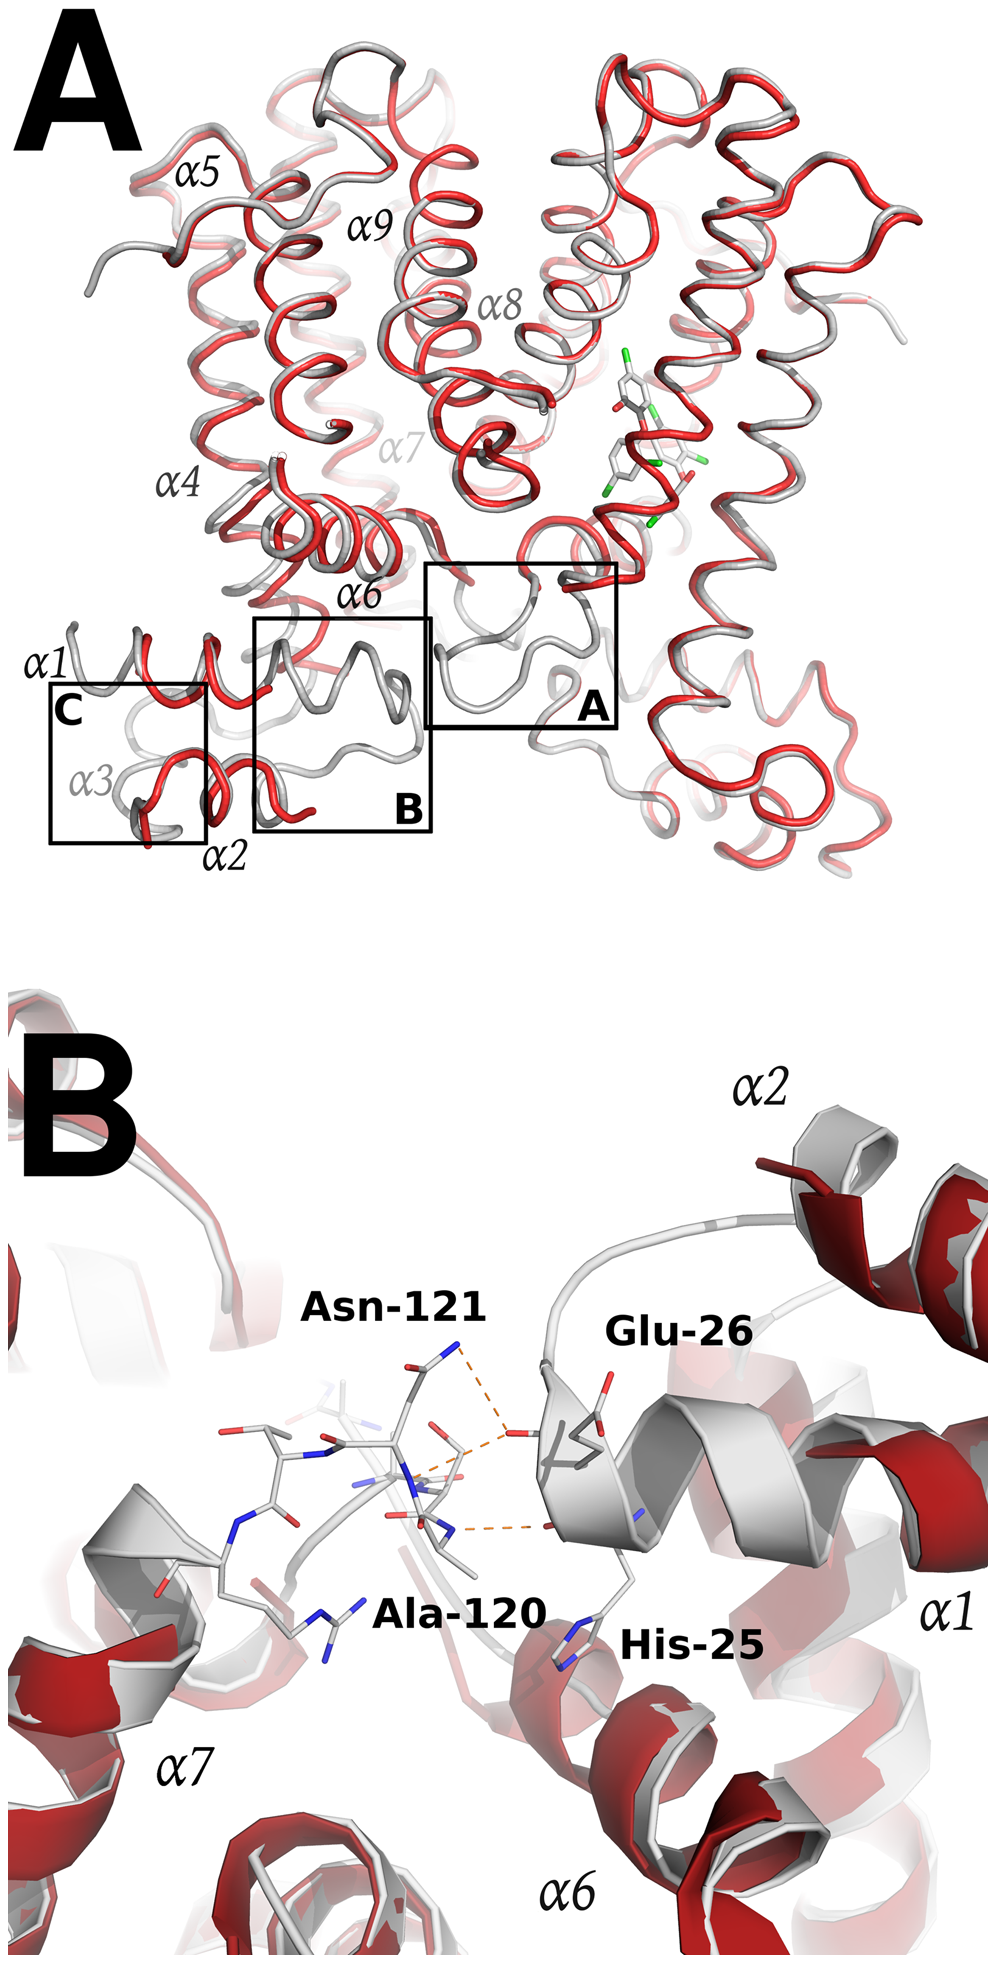 Structural comparison between the apo SmeT (in red) and the SmeT-Triclosan complex (in grey) structures.